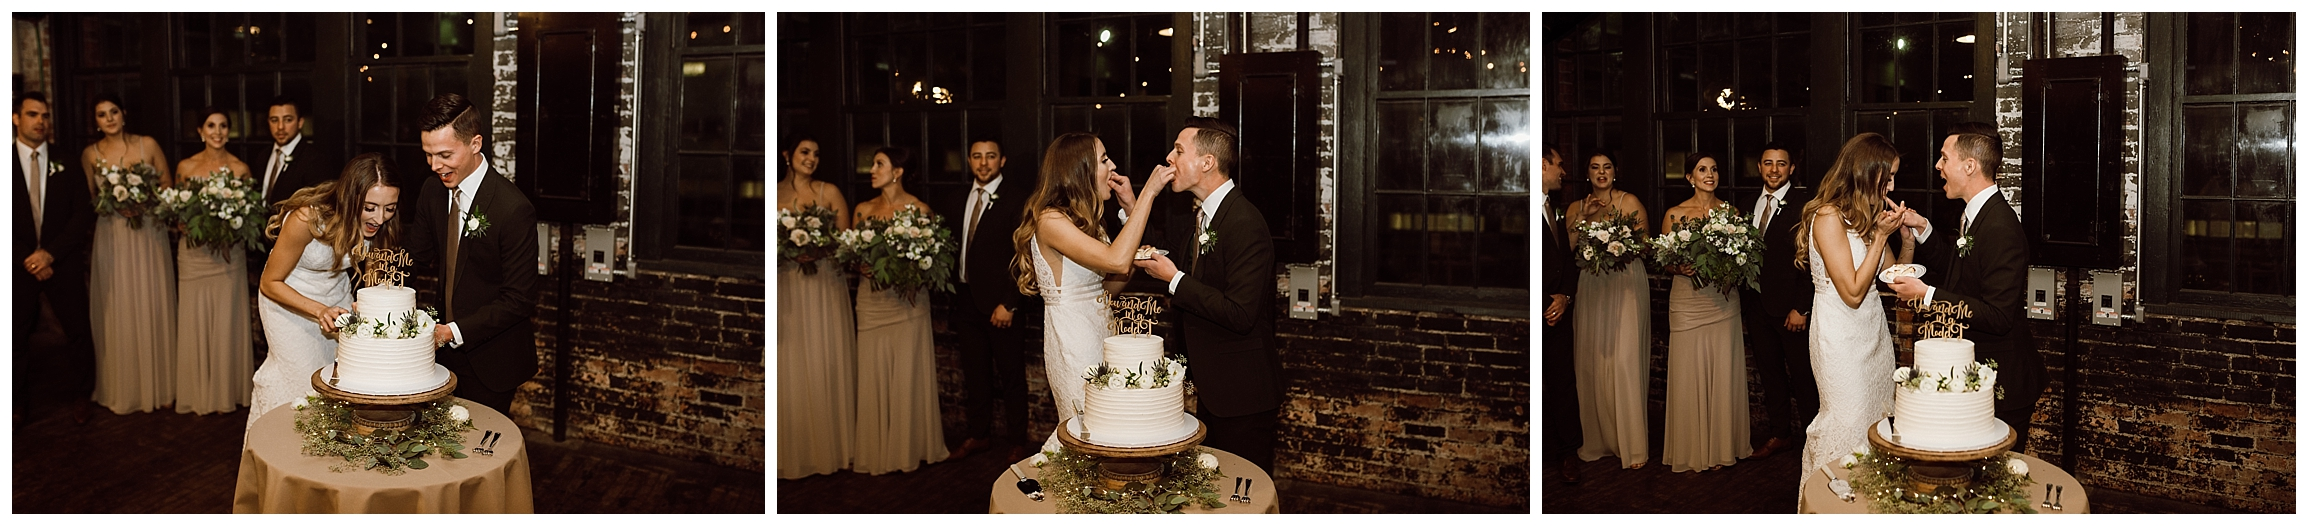 Katie_Vonasek_Photography_Ford_Piquette_Plant_Wedding_Detroit91.JPG